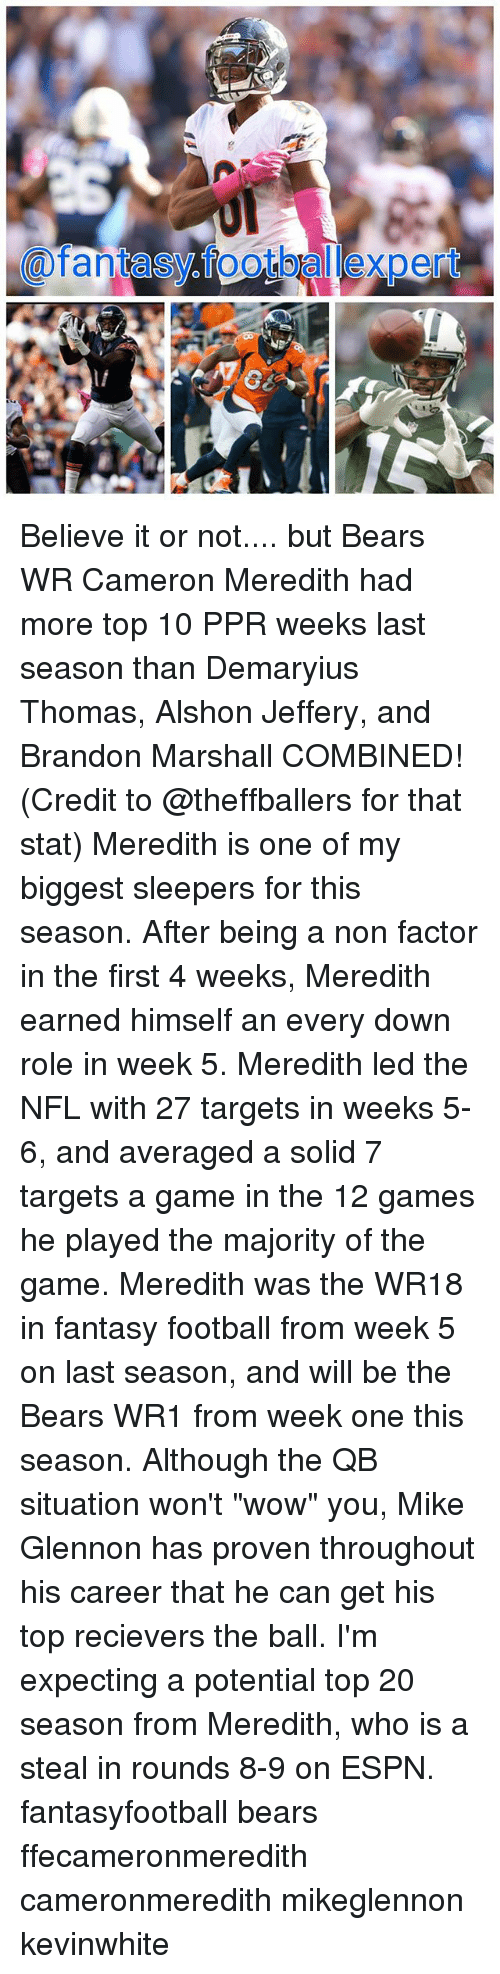 """Espn, Fantasy Football, and Football: 80  @fantasy.footballexpert  0 Believe it or not.... but Bears WR Cameron Meredith had more top 10 PPR weeks last season than Demaryius Thomas, Alshon Jeffery, and Brandon Marshall COMBINED! (Credit to @theffballers for that stat) Meredith is one of my biggest sleepers for this season. After being a non factor in the first 4 weeks, Meredith earned himself an every down role in week 5. Meredith led the NFL with 27 targets in weeks 5-6, and averaged a solid 7 targets a game in the 12 games he played the majority of the game. Meredith was the WR18 in fantasy football from week 5 on last season, and will be the Bears WR1 from week one this season. Although the QB situation won't """"wow"""" you, Mike Glennon has proven throughout his career that he can get his top recievers the ball. I'm expecting a potential top 20 season from Meredith, who is a steal in rounds 8-9 on ESPN. fantasyfootball bears ffecameronmeredith cameronmeredith mikeglennon kevinwhite"""